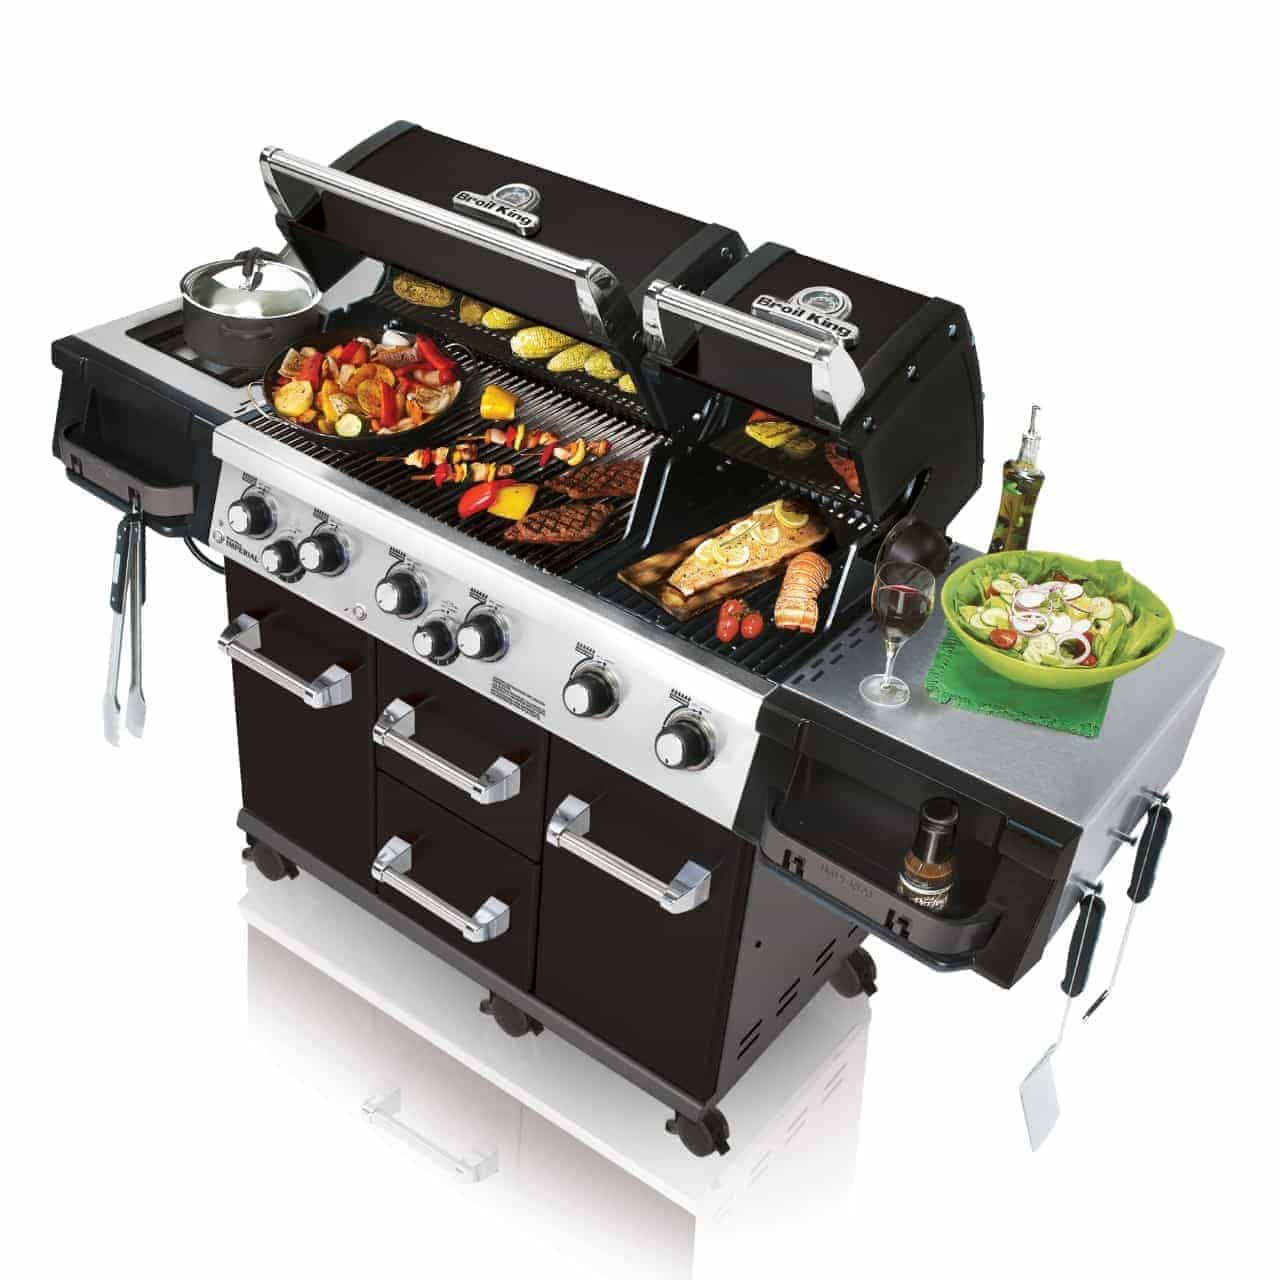 Broil King Imperial Xls Black 957743 All Gas Barbecues